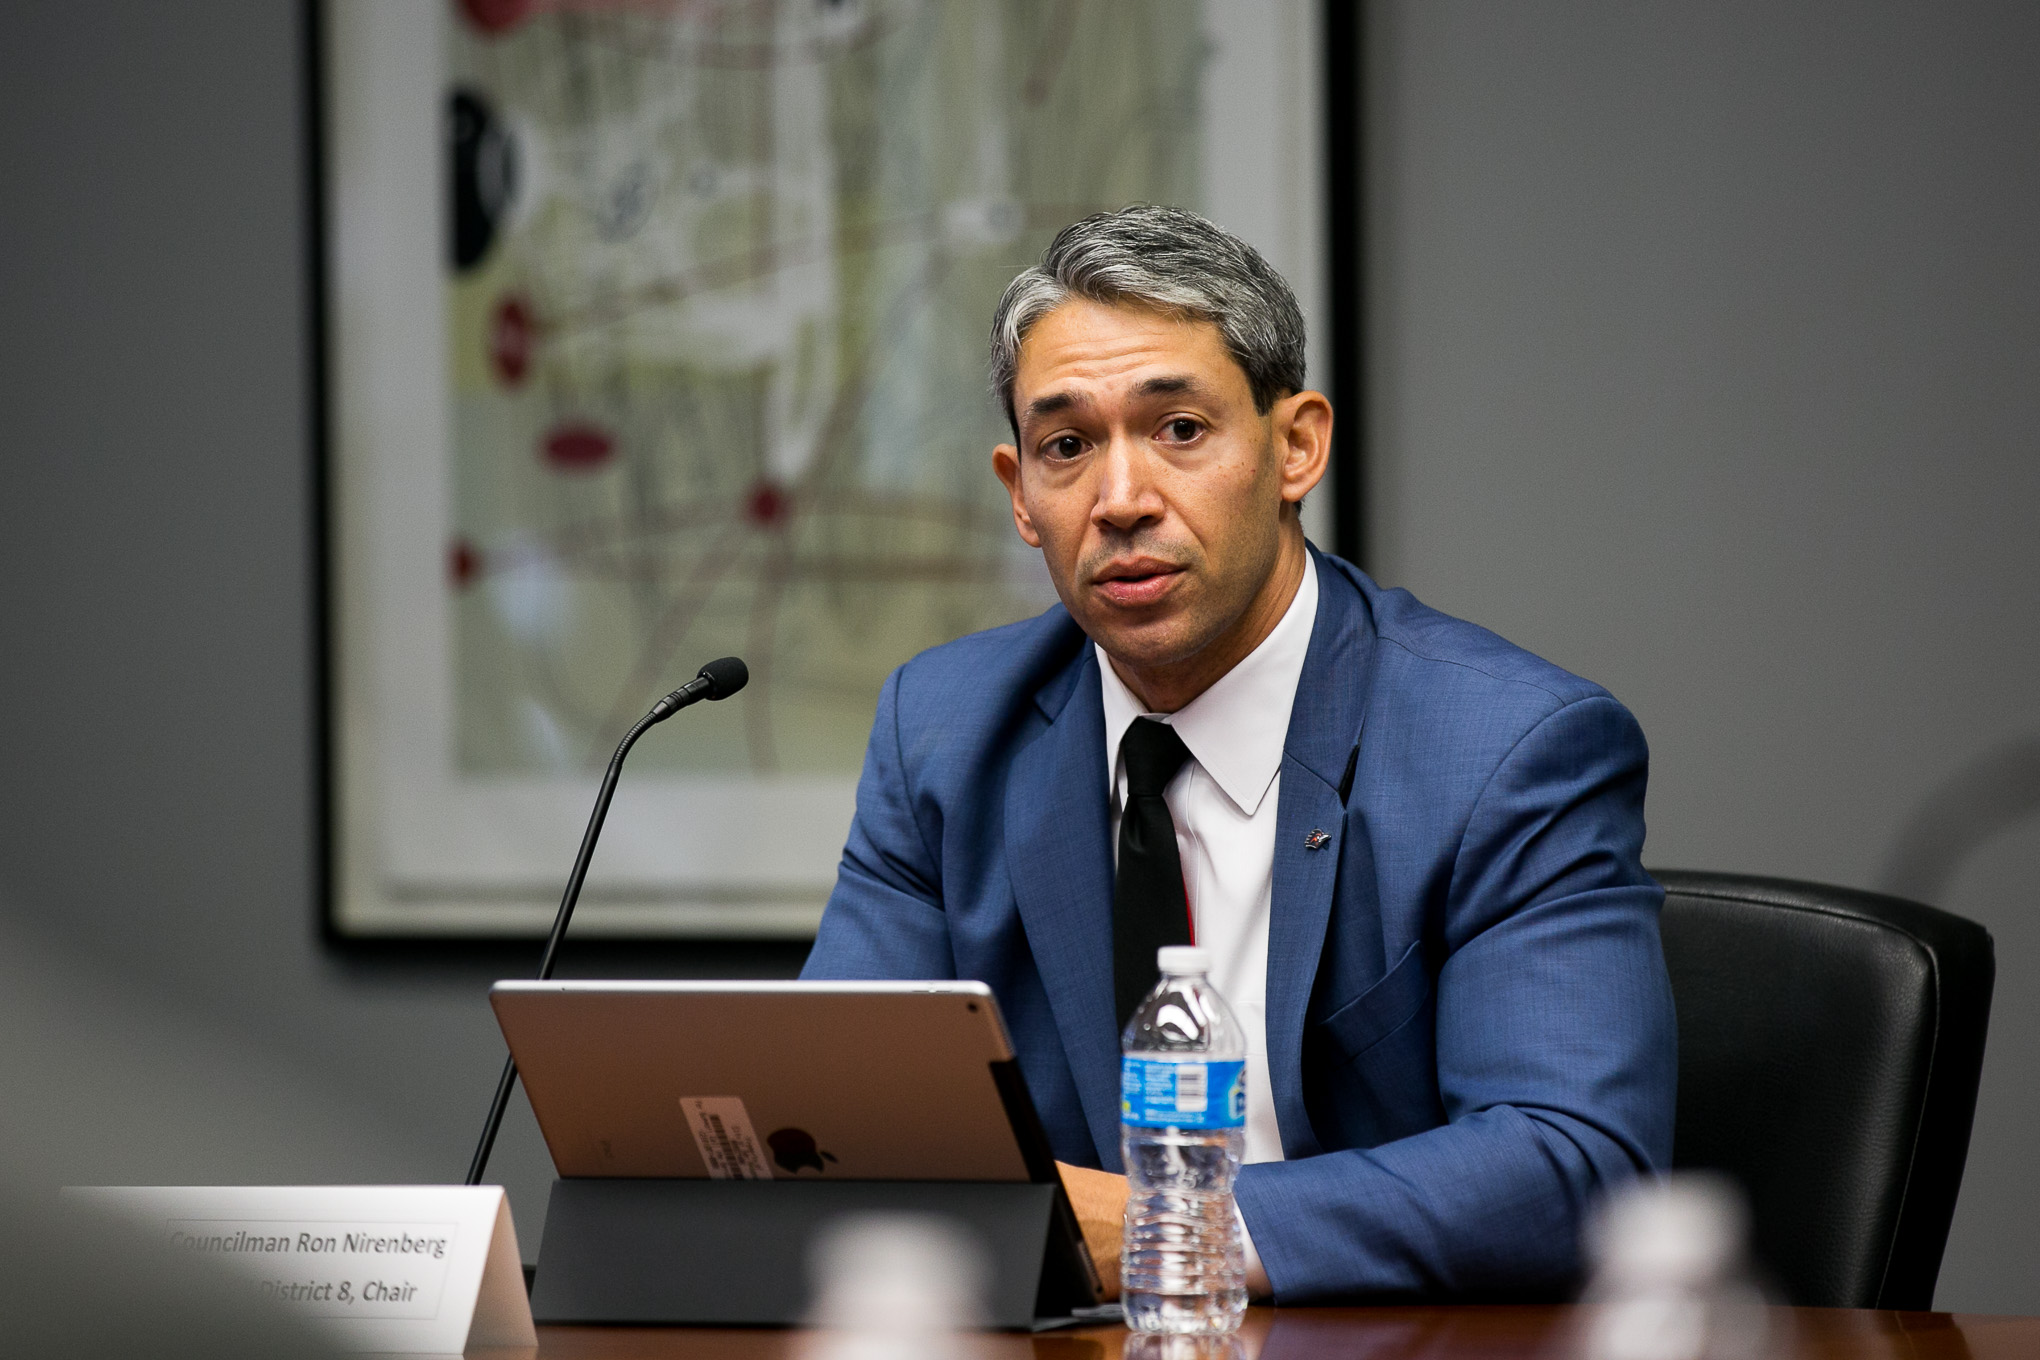 Councilman Ron Nirenberg (D8) voices his concerns for continued community involved for the implementation of SA Tomorrow. Photo by Kathryn